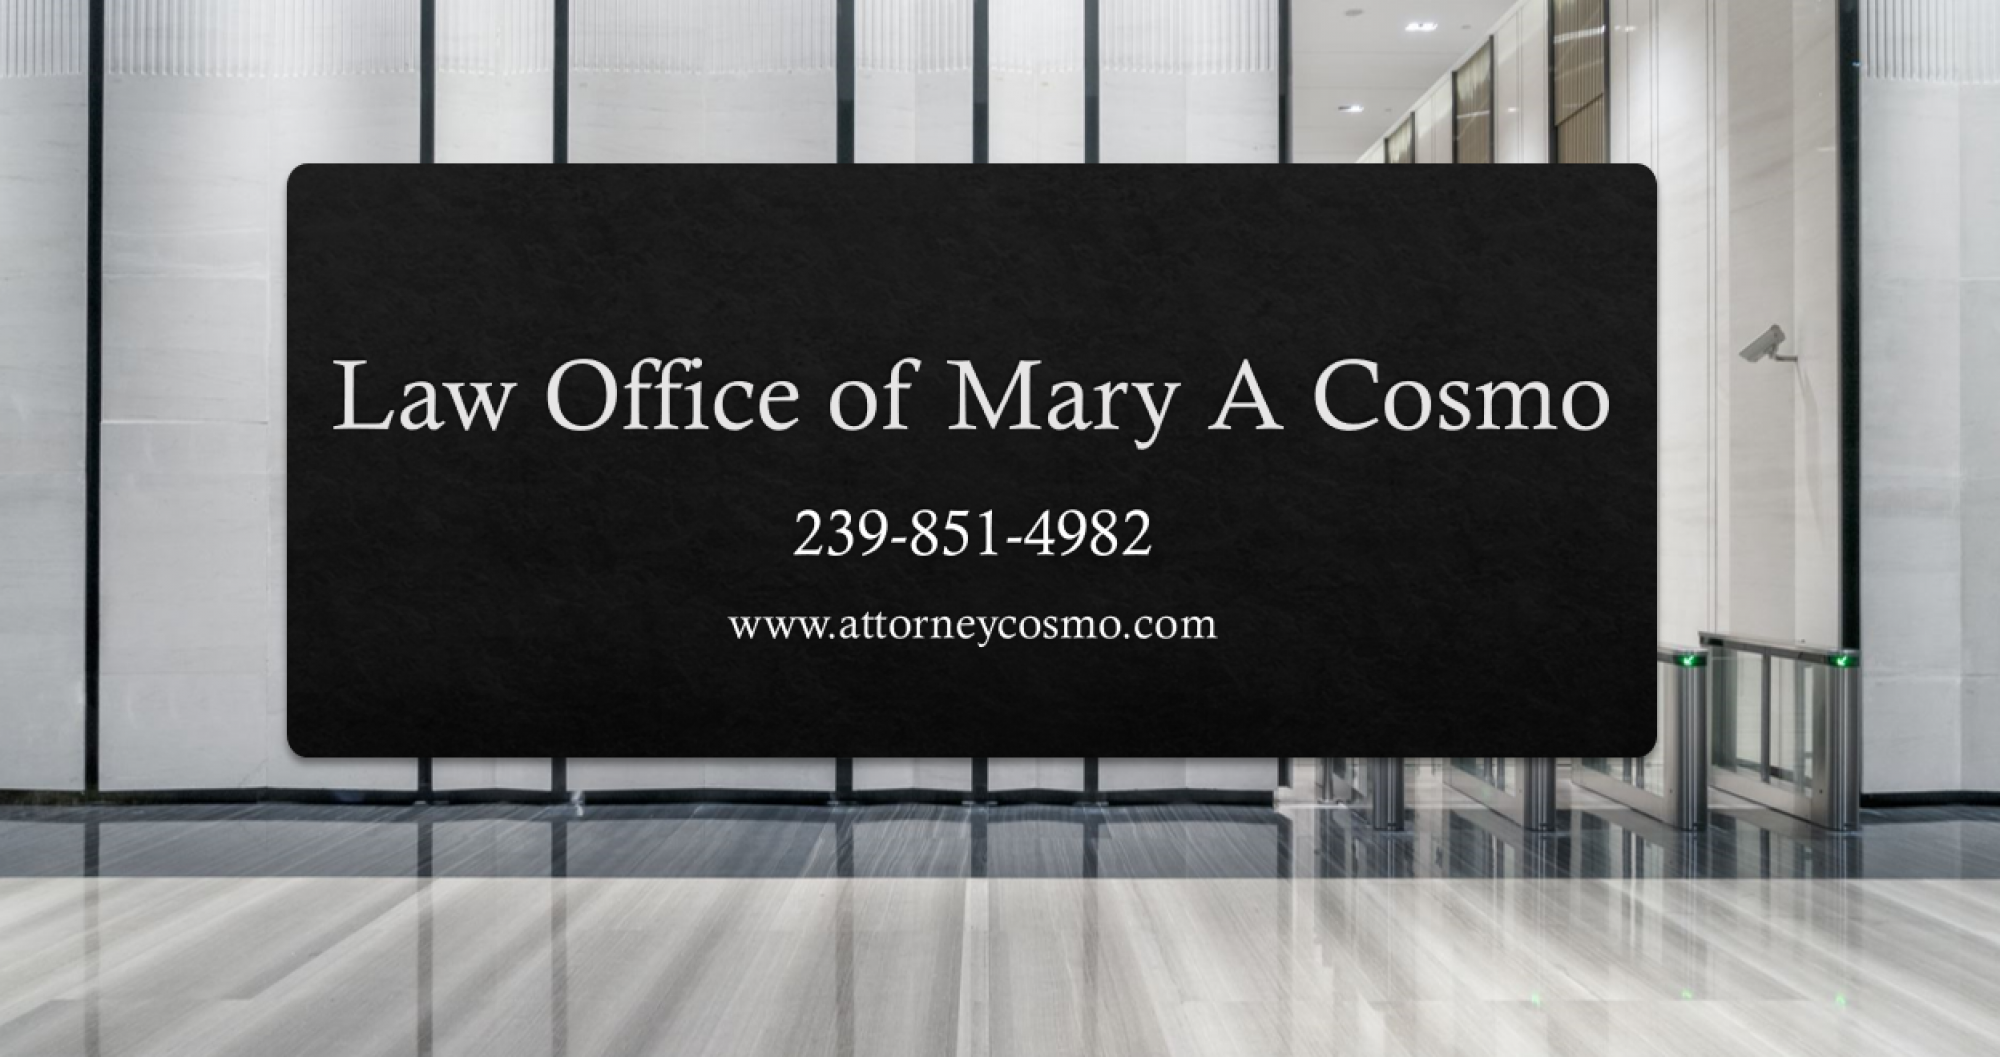 LAW OFFICE OF MARY A COSMO